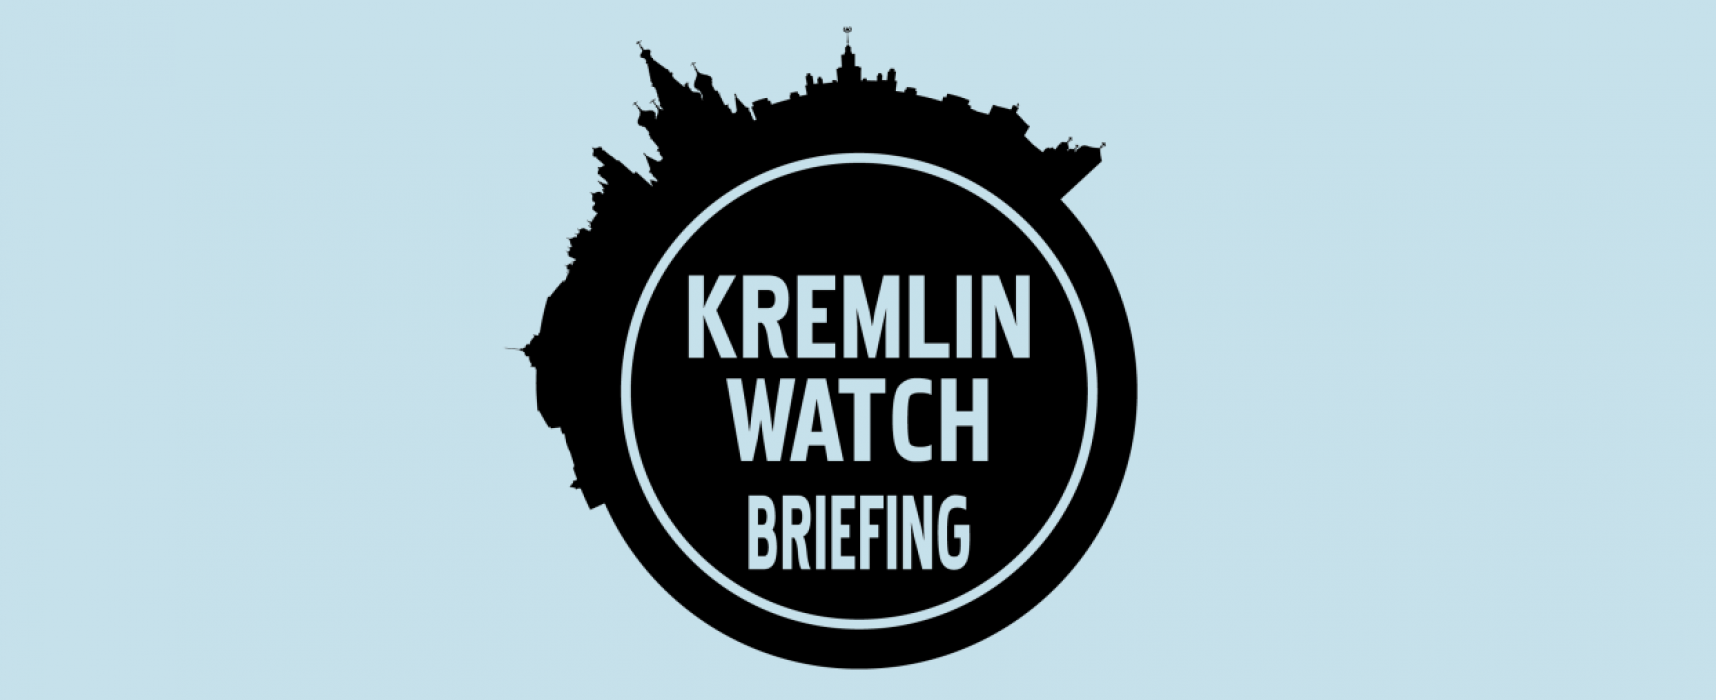 Kremlin Watch Briefing: How is the pandemic being abused by authoritarian regimes?